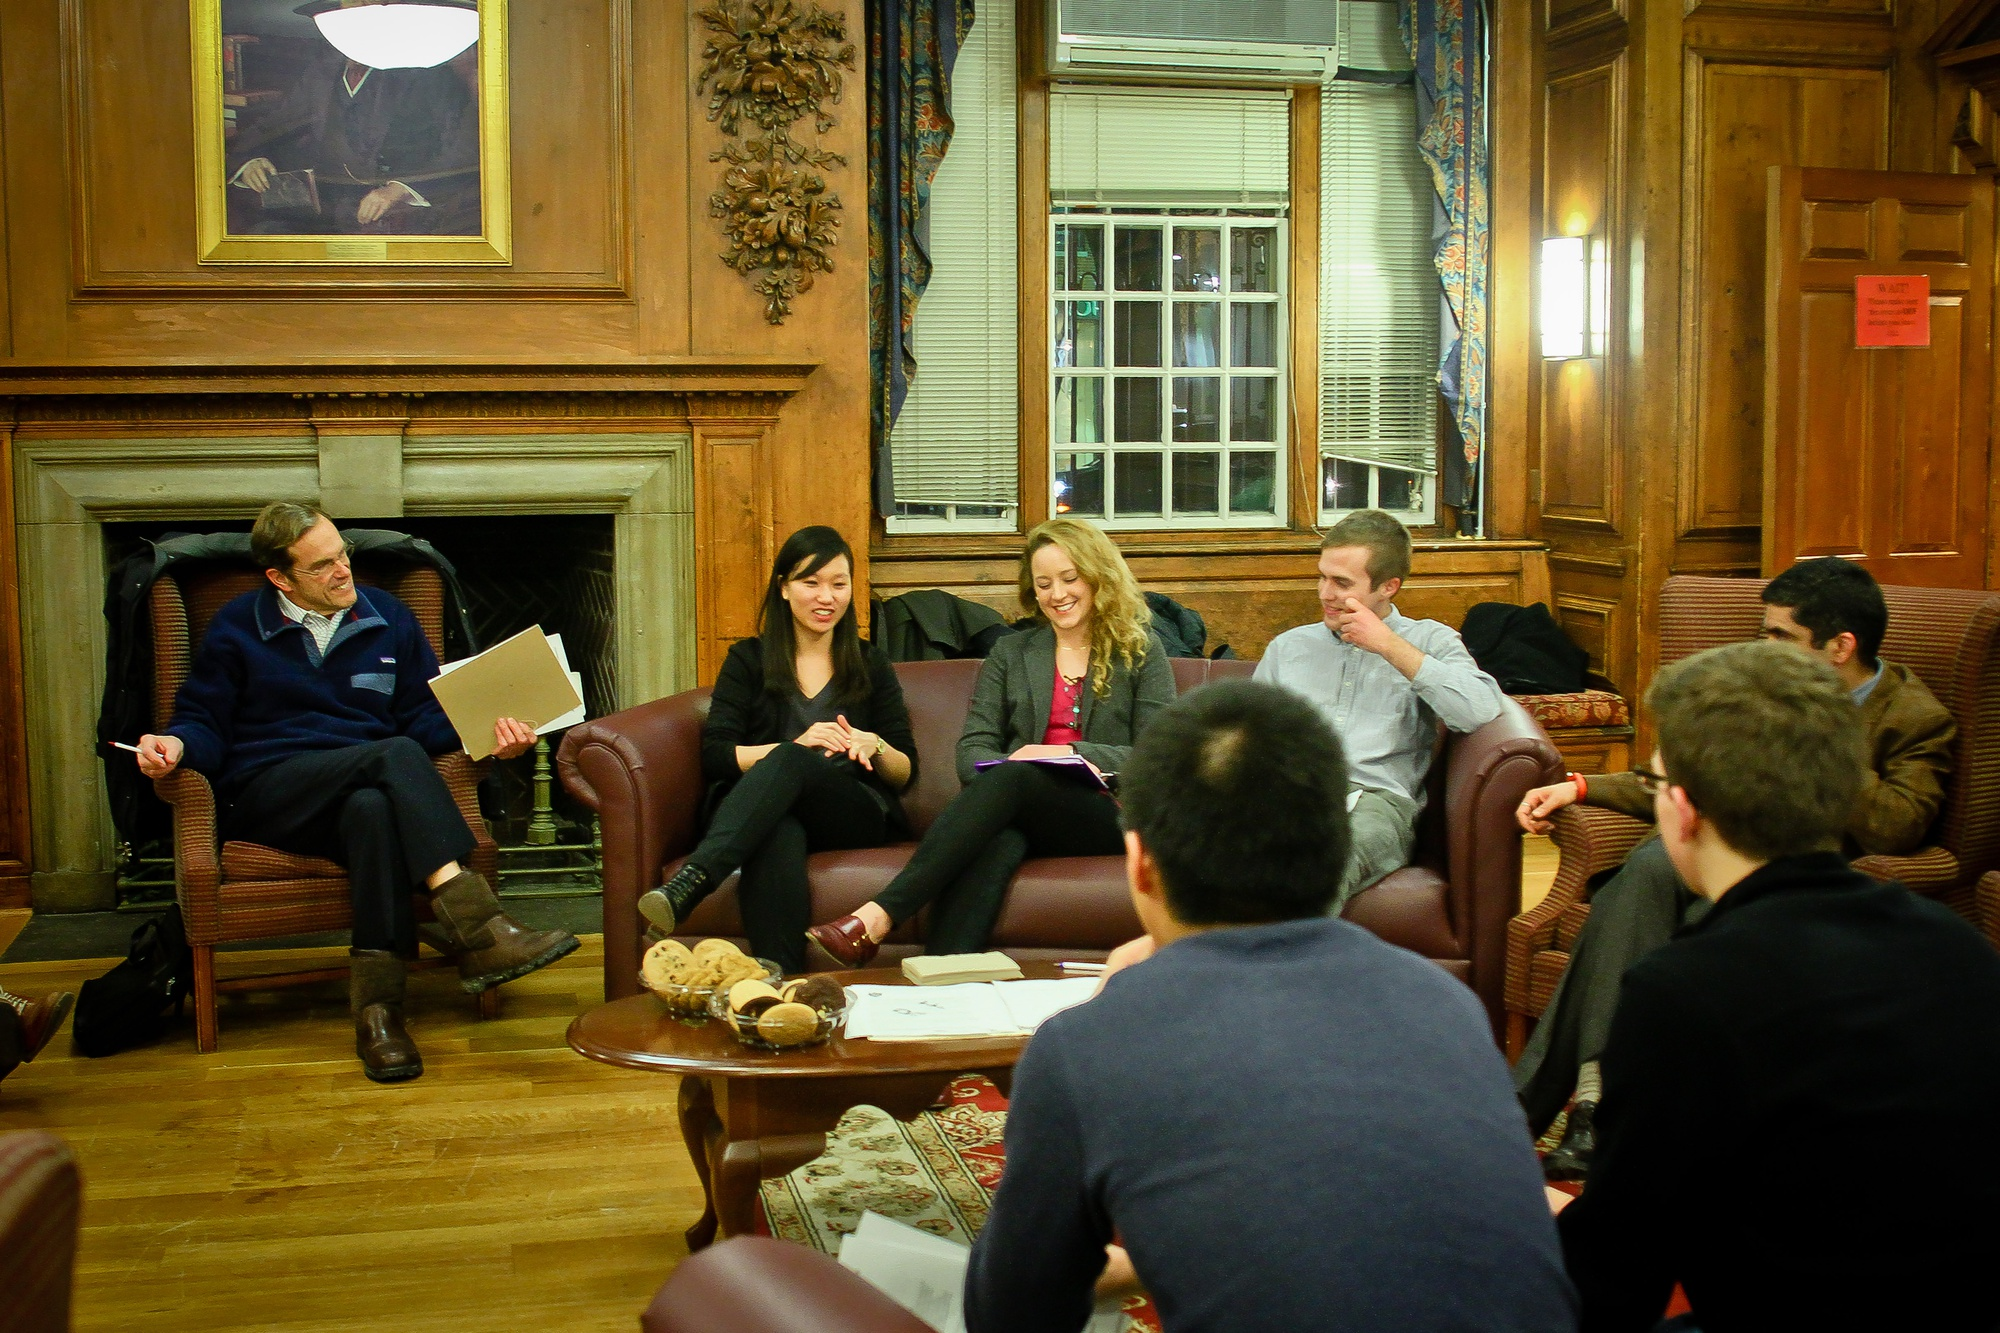 The Academic Integrity Committee came together in Straus Hall's Common Room one last time Tuesday night to give students the opportunity to discuss and provide feedback on the newly drafted Honor Code.